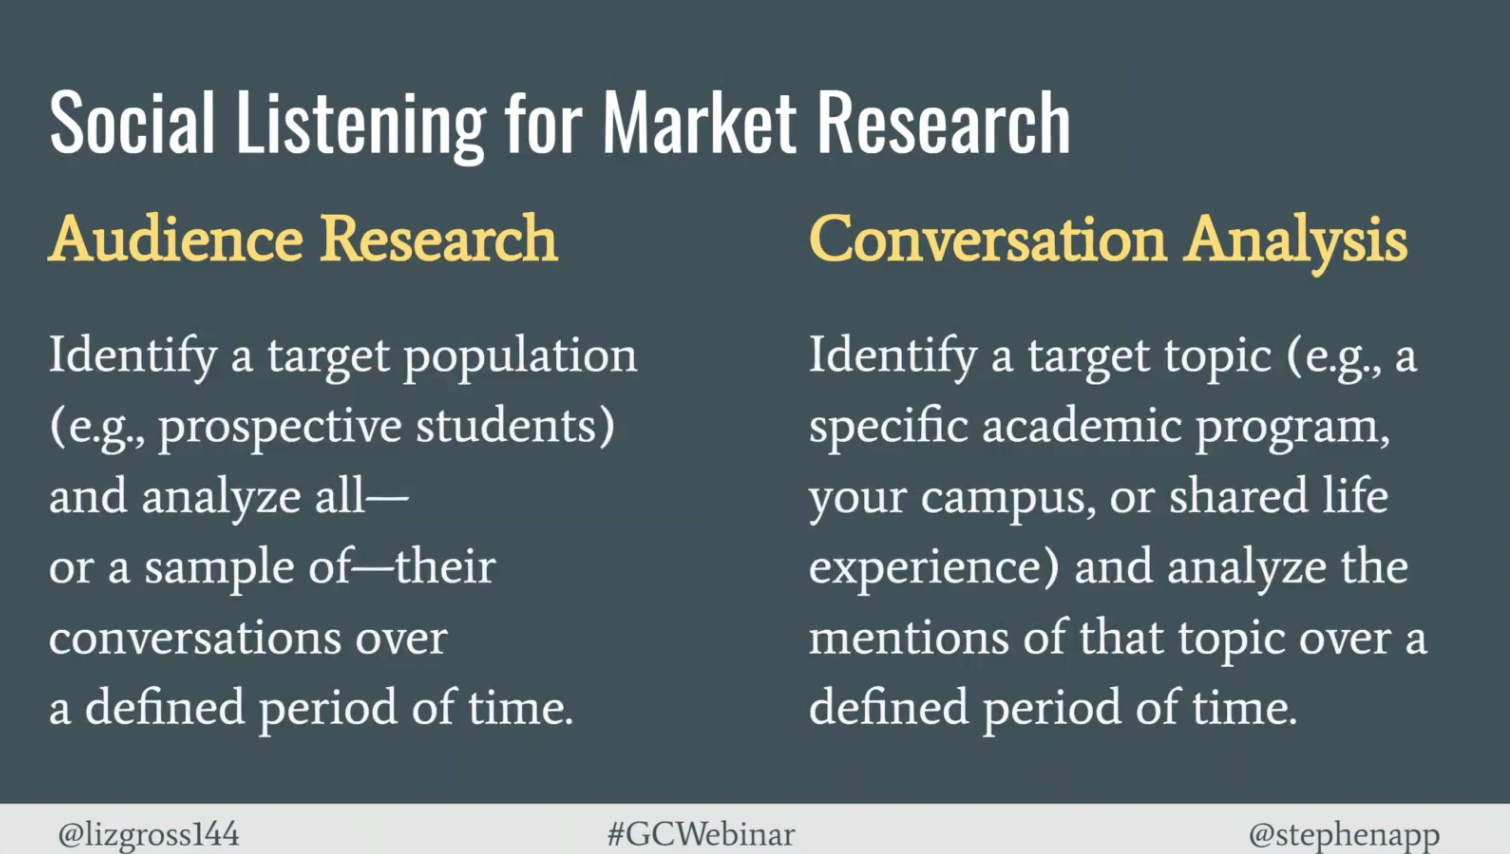 Image shows two types of social listening for market research: 1) Audience Research and 2) Conversation Analysis